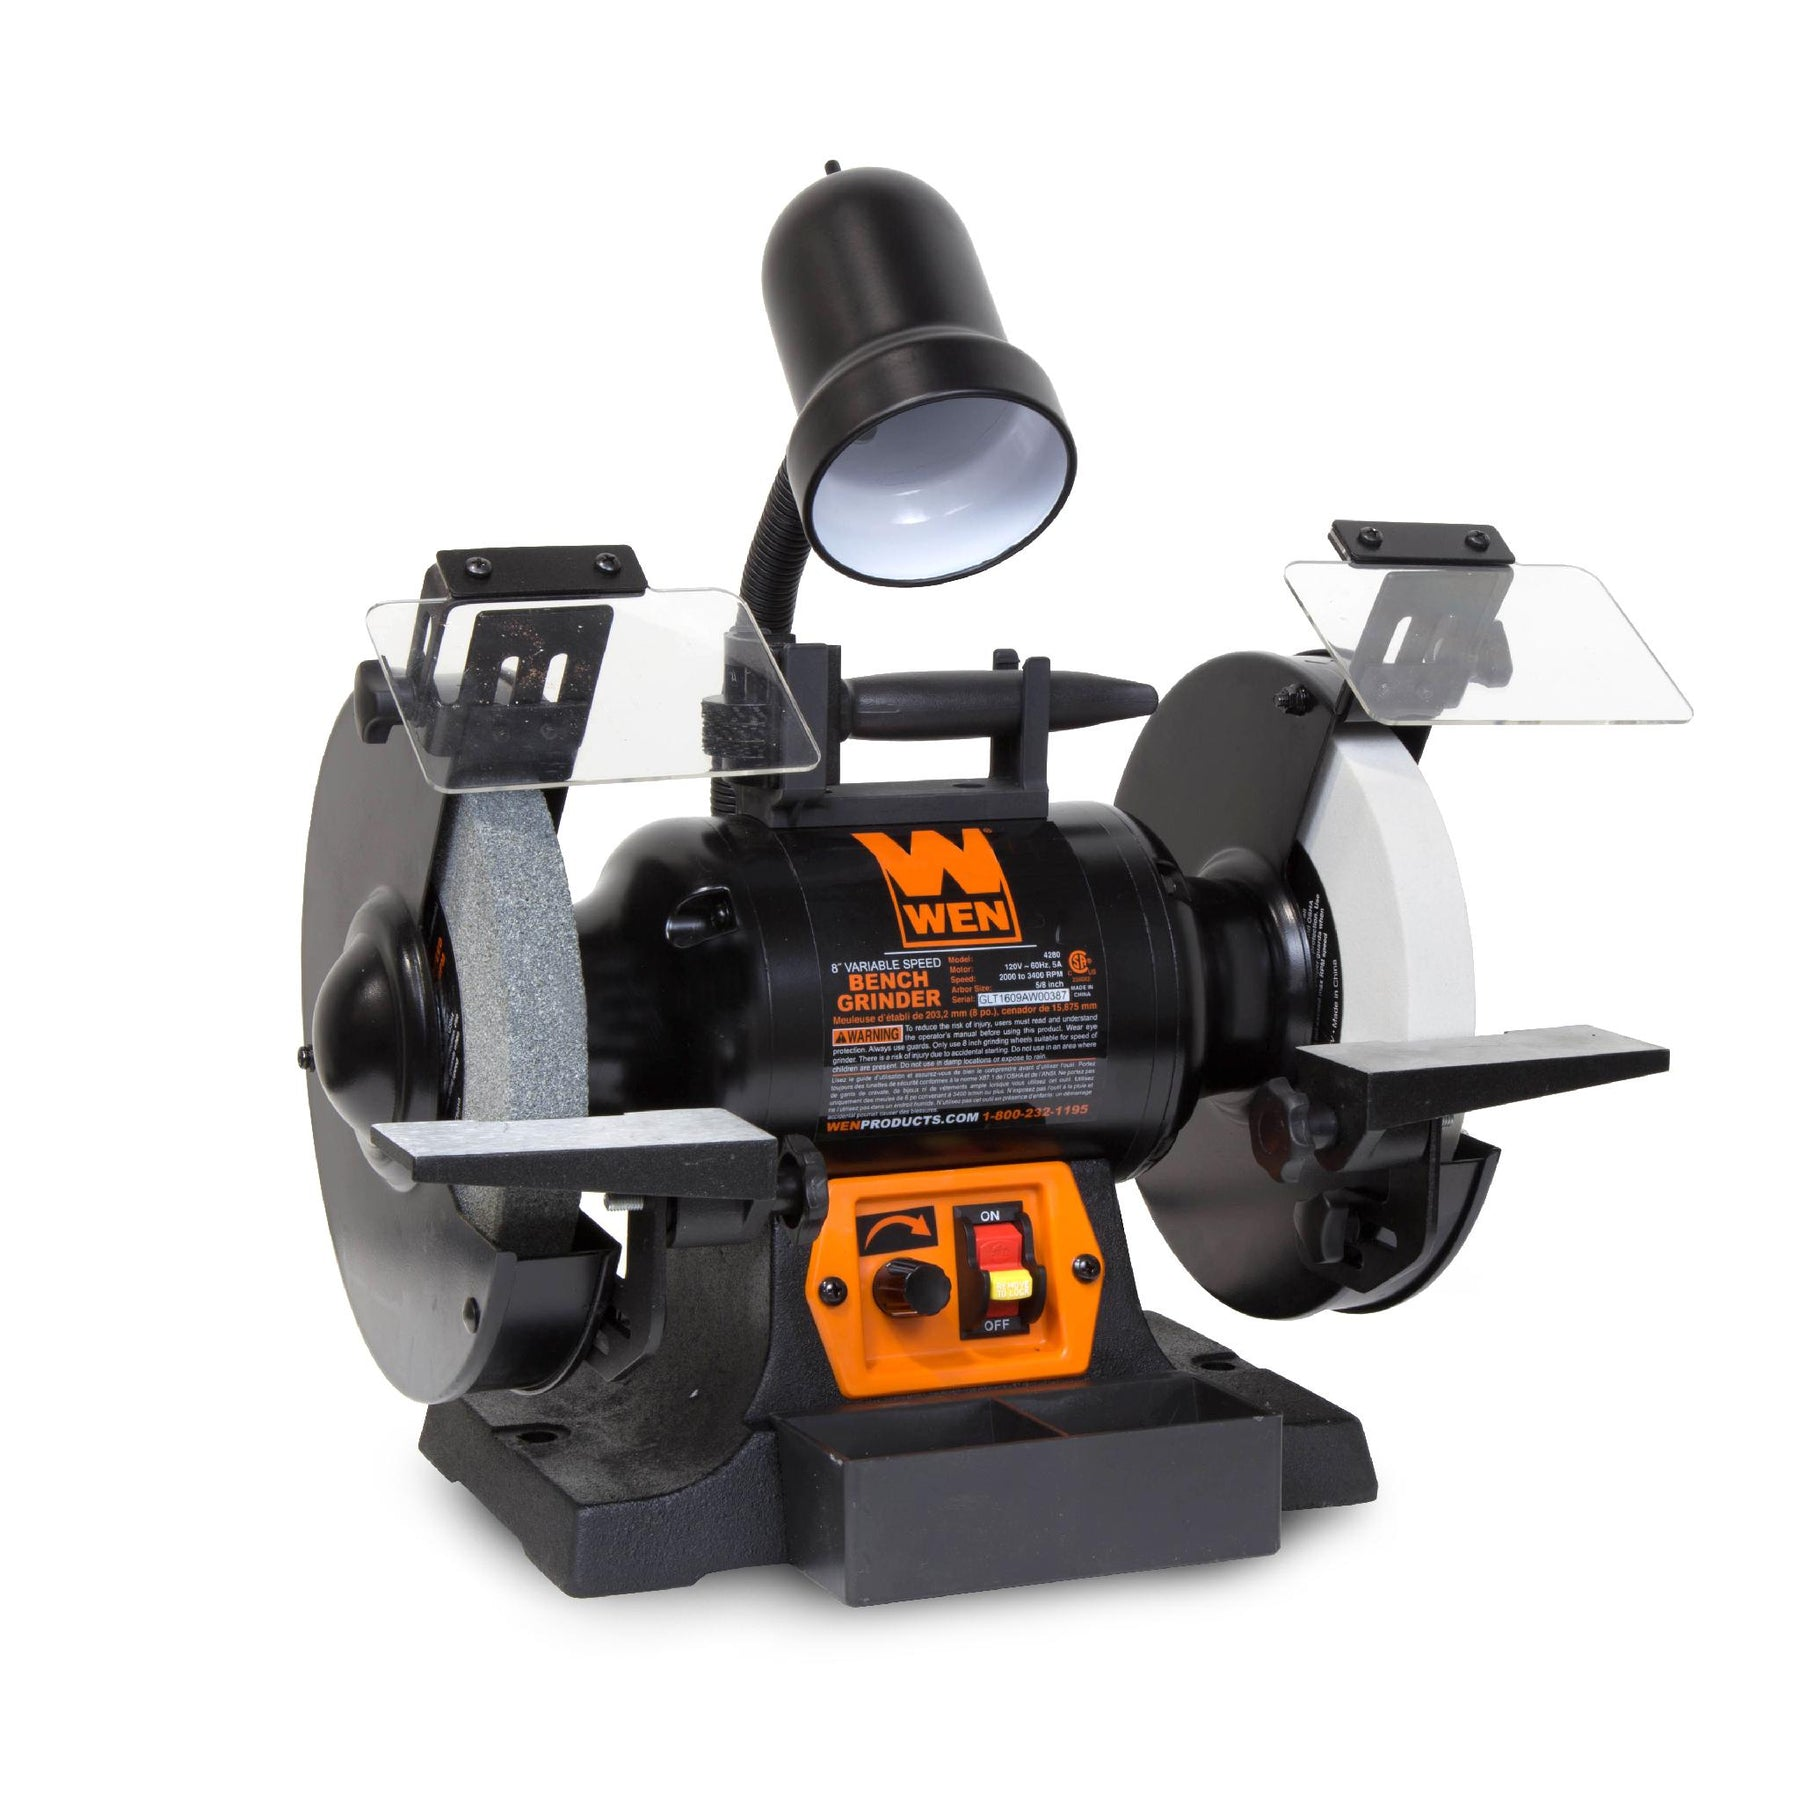 Sensational Wen 4280 5 Amp 8 Inch Variable Speed Bench Grinder With Work Light Ncnpc Chair Design For Home Ncnpcorg